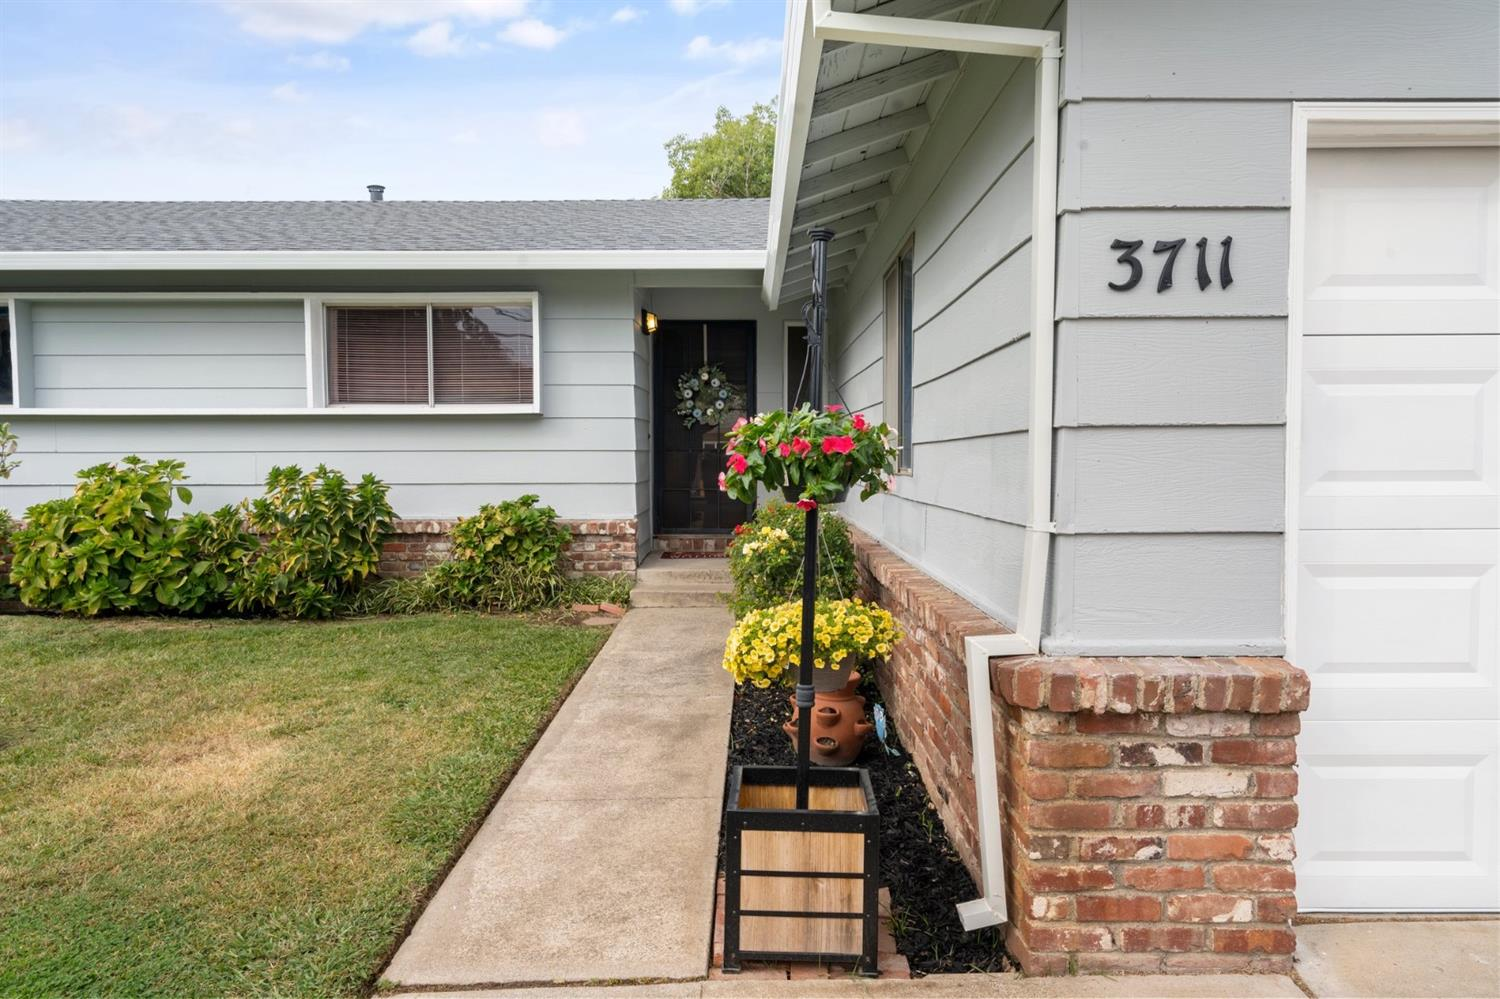 Location!Location!Home is in Desirable Carmichael Neighborhood. Walking Distance to: American River,